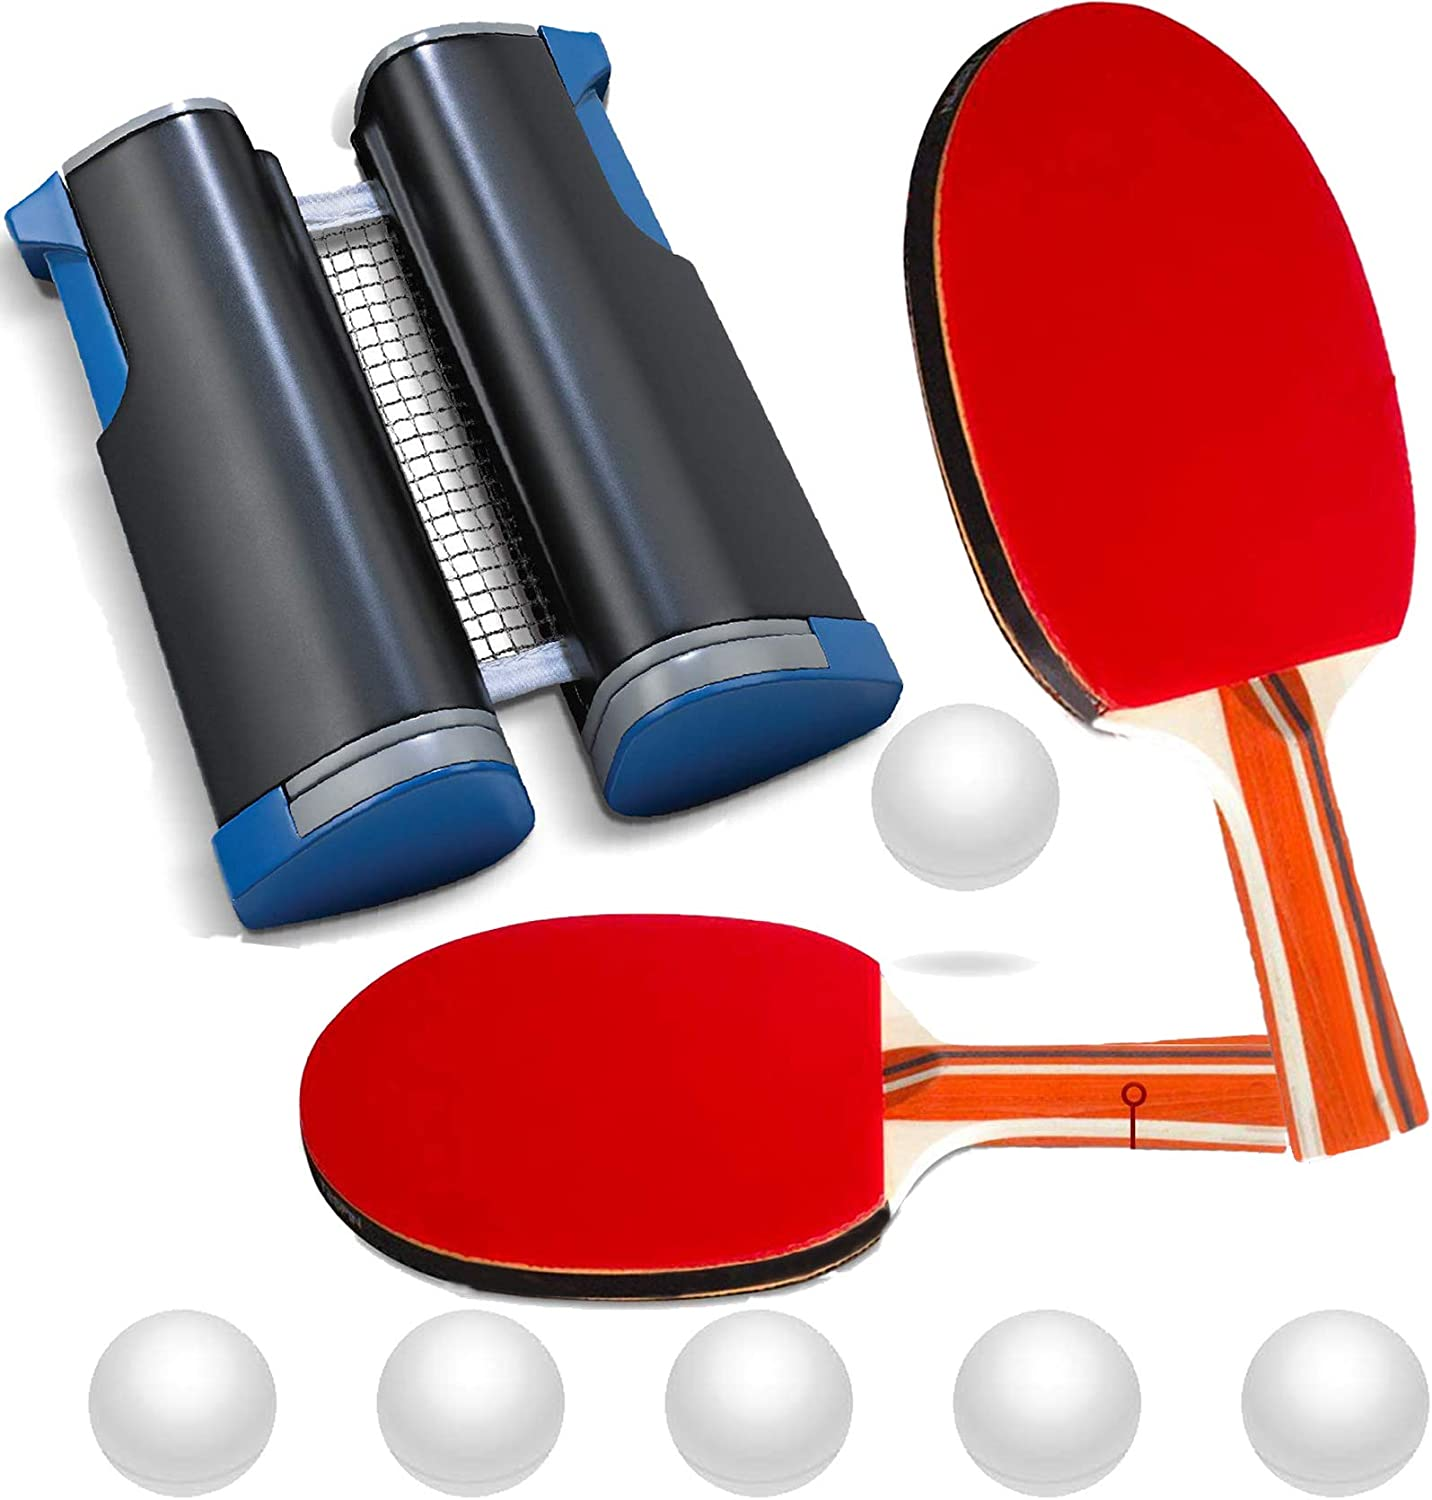 Ping Pong Paddle, Retractable Ping Pong Net with 2 Table Tennis Paddles 6 Balls for Any Table, Anywhere Ping Pong Equipment Home Indoor or Outdoor Portable Table Top Game to Go Set